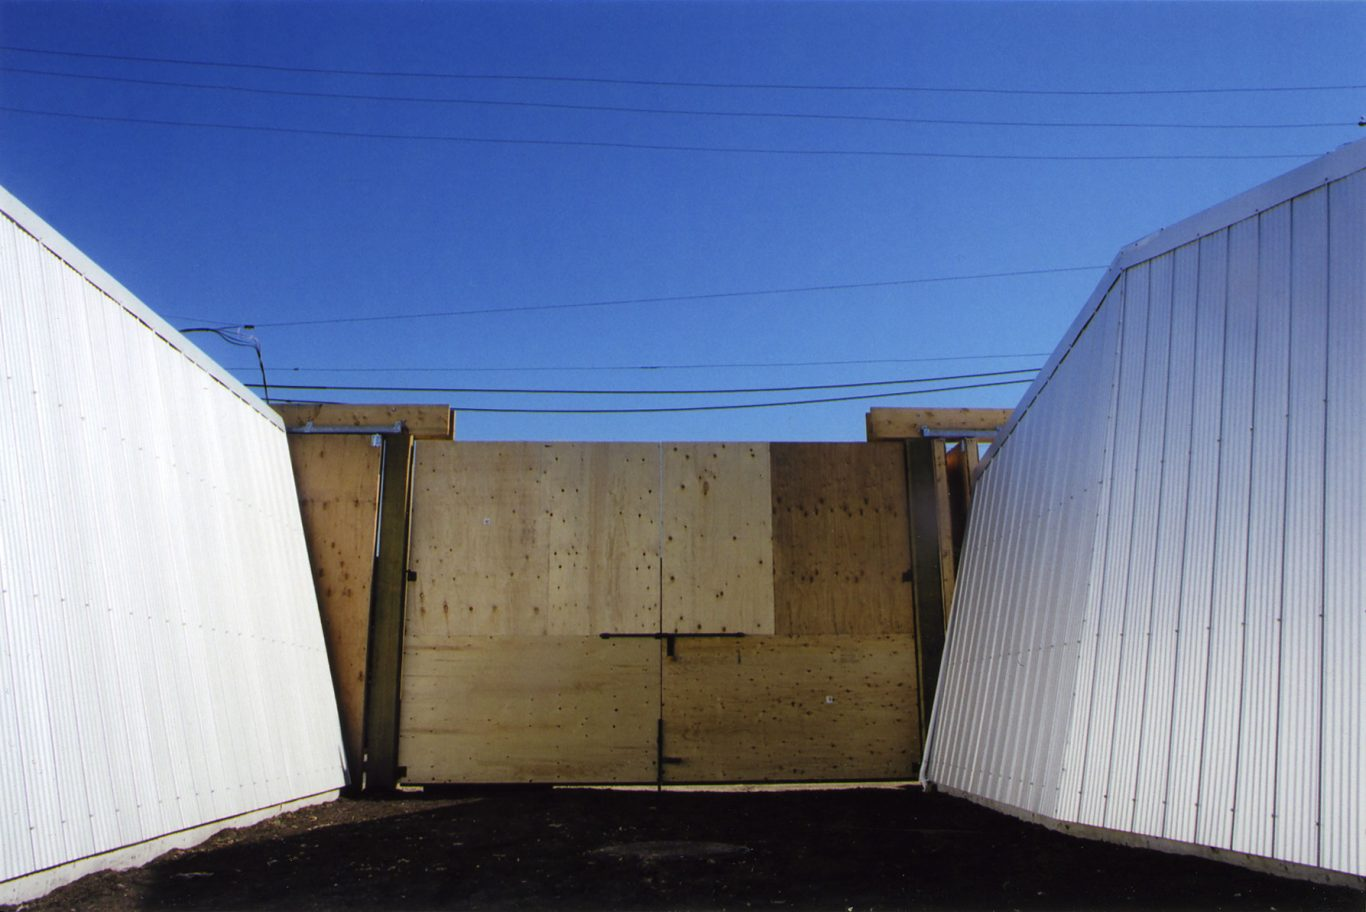 Two corrugated white shed walls against a plywood gate